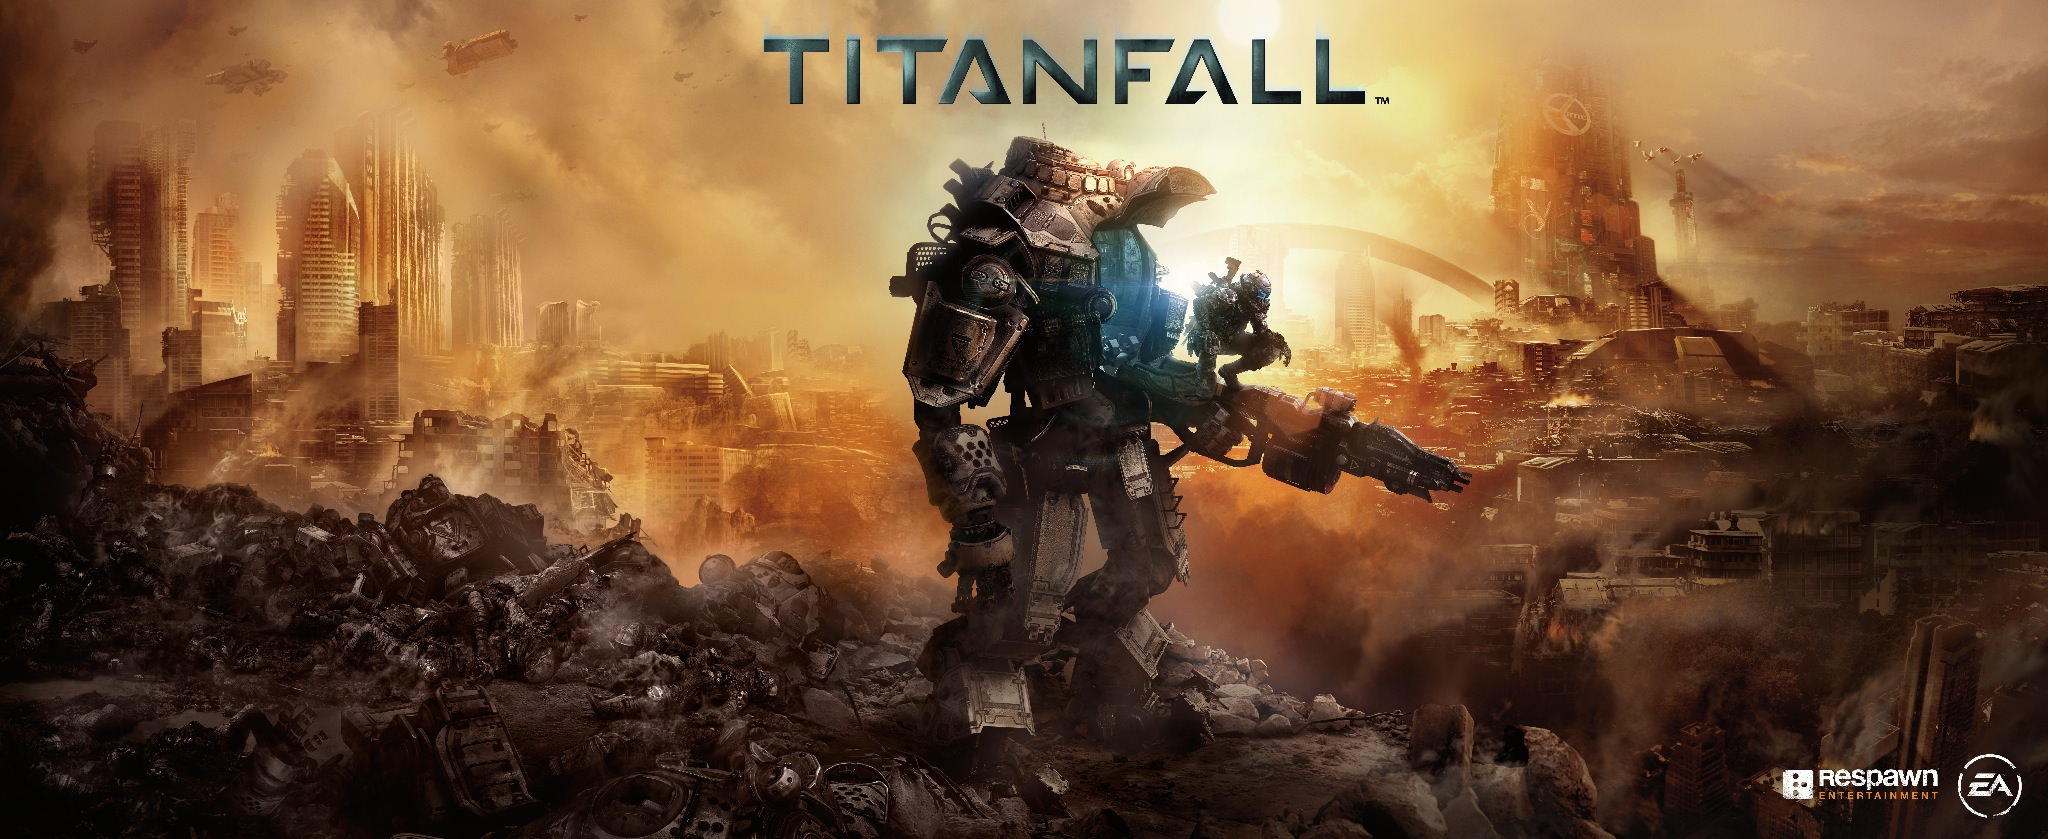 Titanfall Cover Impression